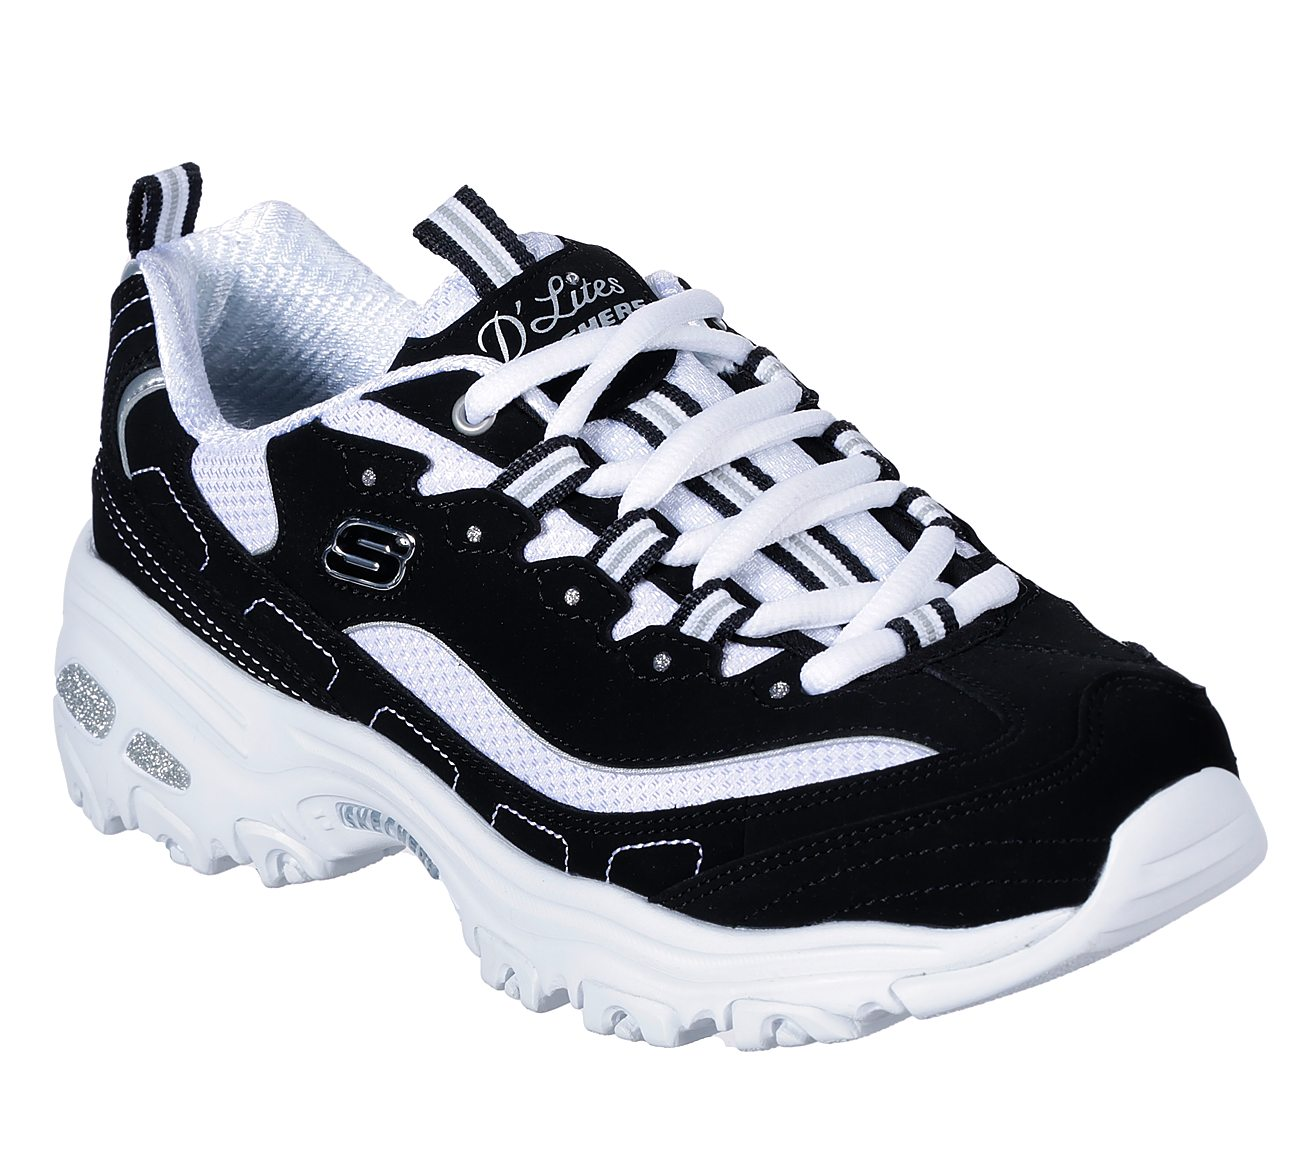 6aac055803a Buy SKECHERS D Lites - Biggest Fan D Lites Shoes only  70.00